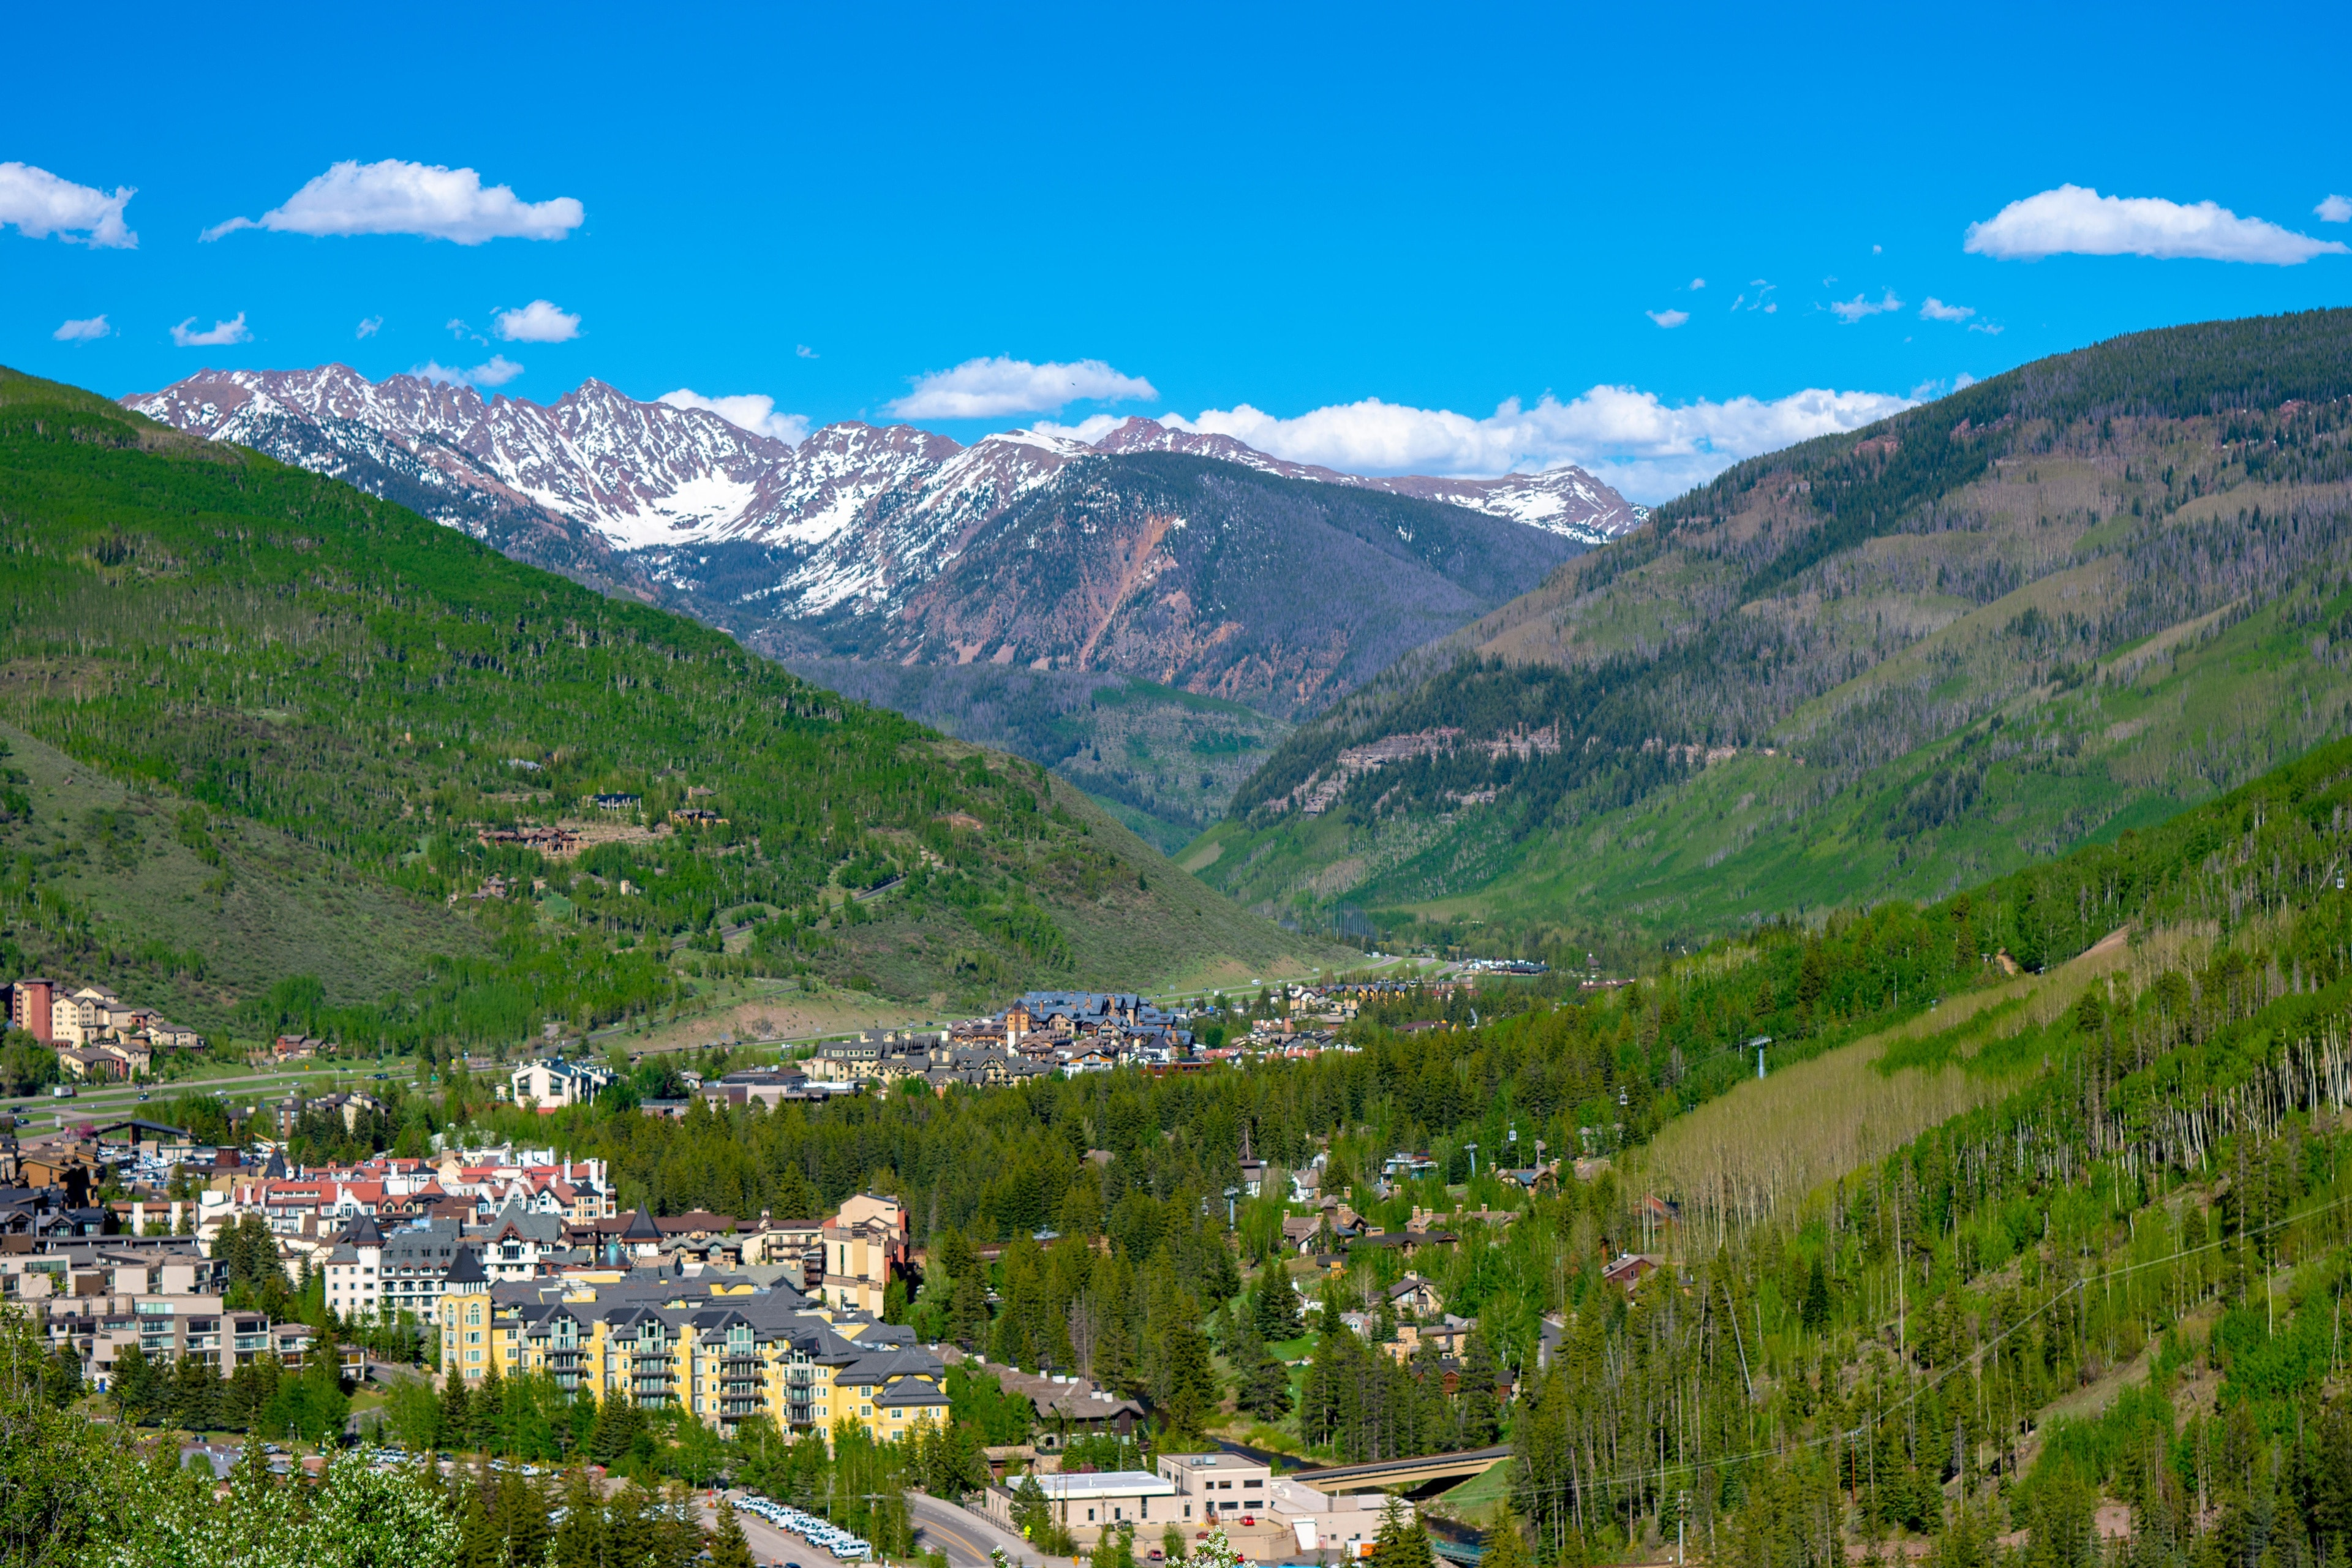 Cheap Hotels In Vail Beaver Creek Last Minute Hotel Deals Vail Beaver Creek Hotwire